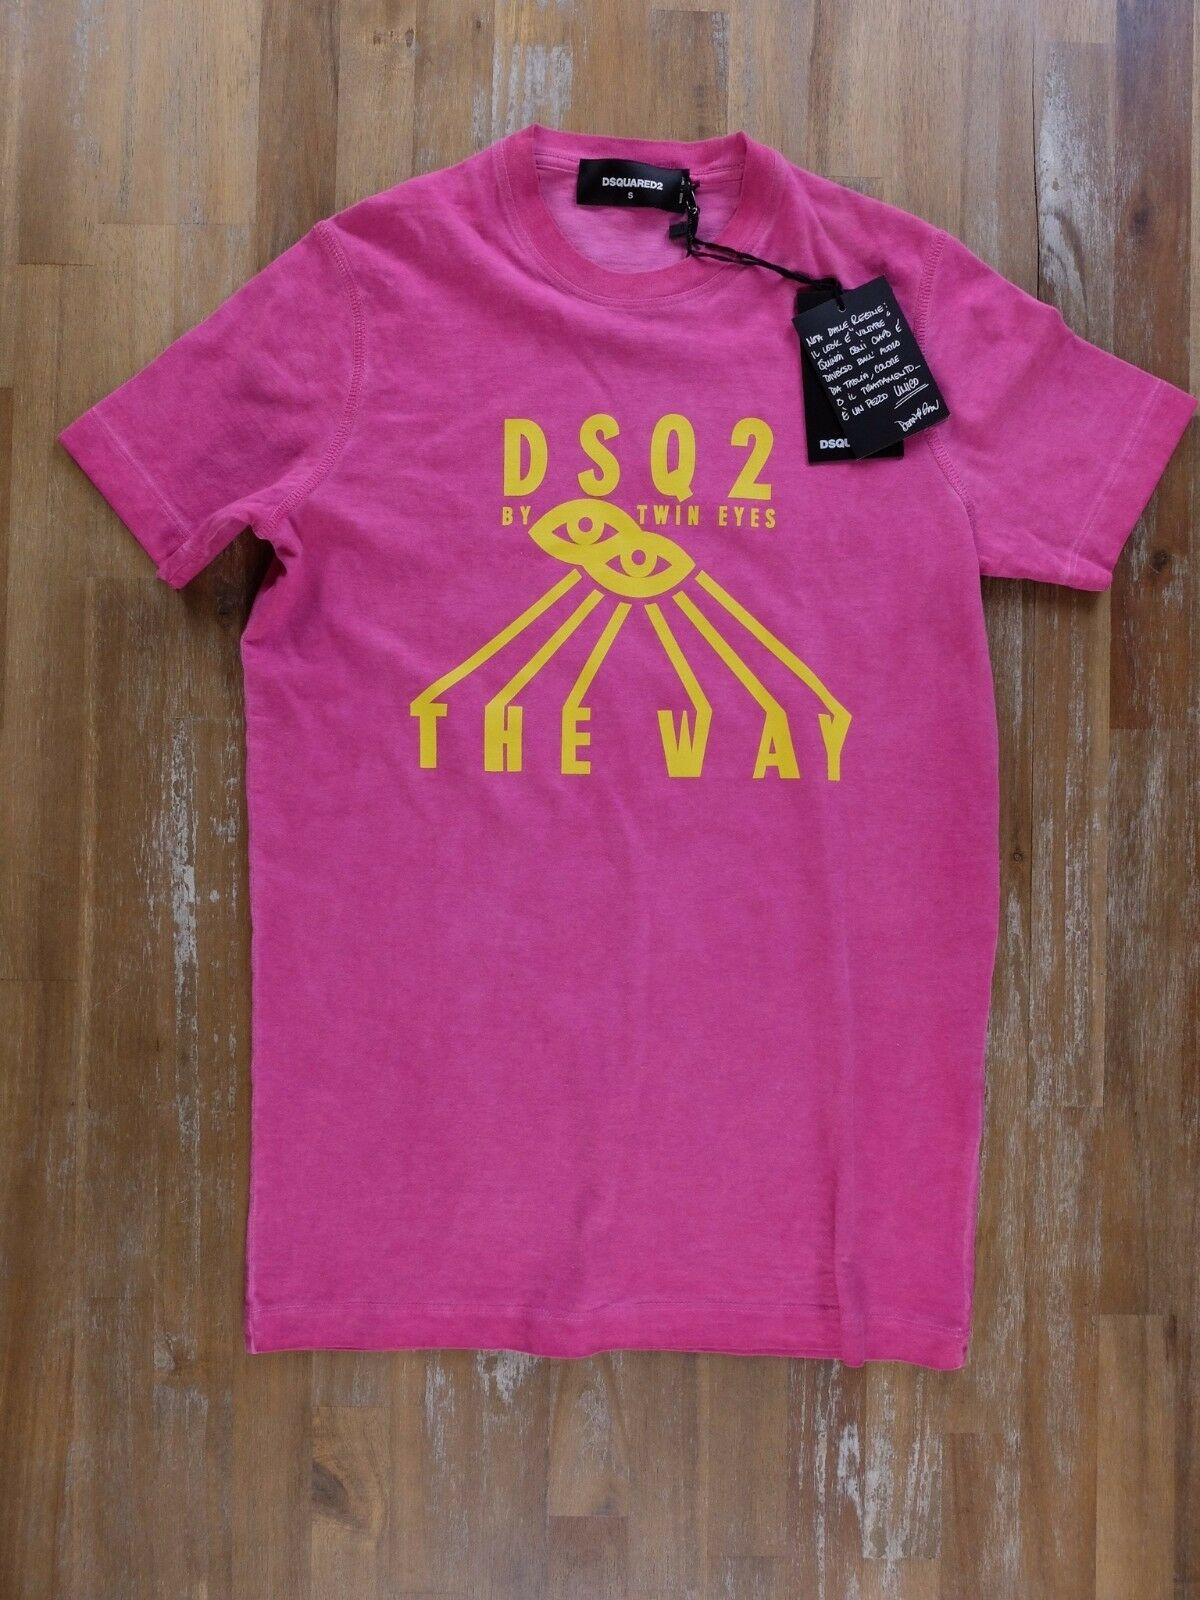 2da0bfc3 DSQUARED2 mens slim-fit pink t-shirt authentic - Size Small - NWT ...